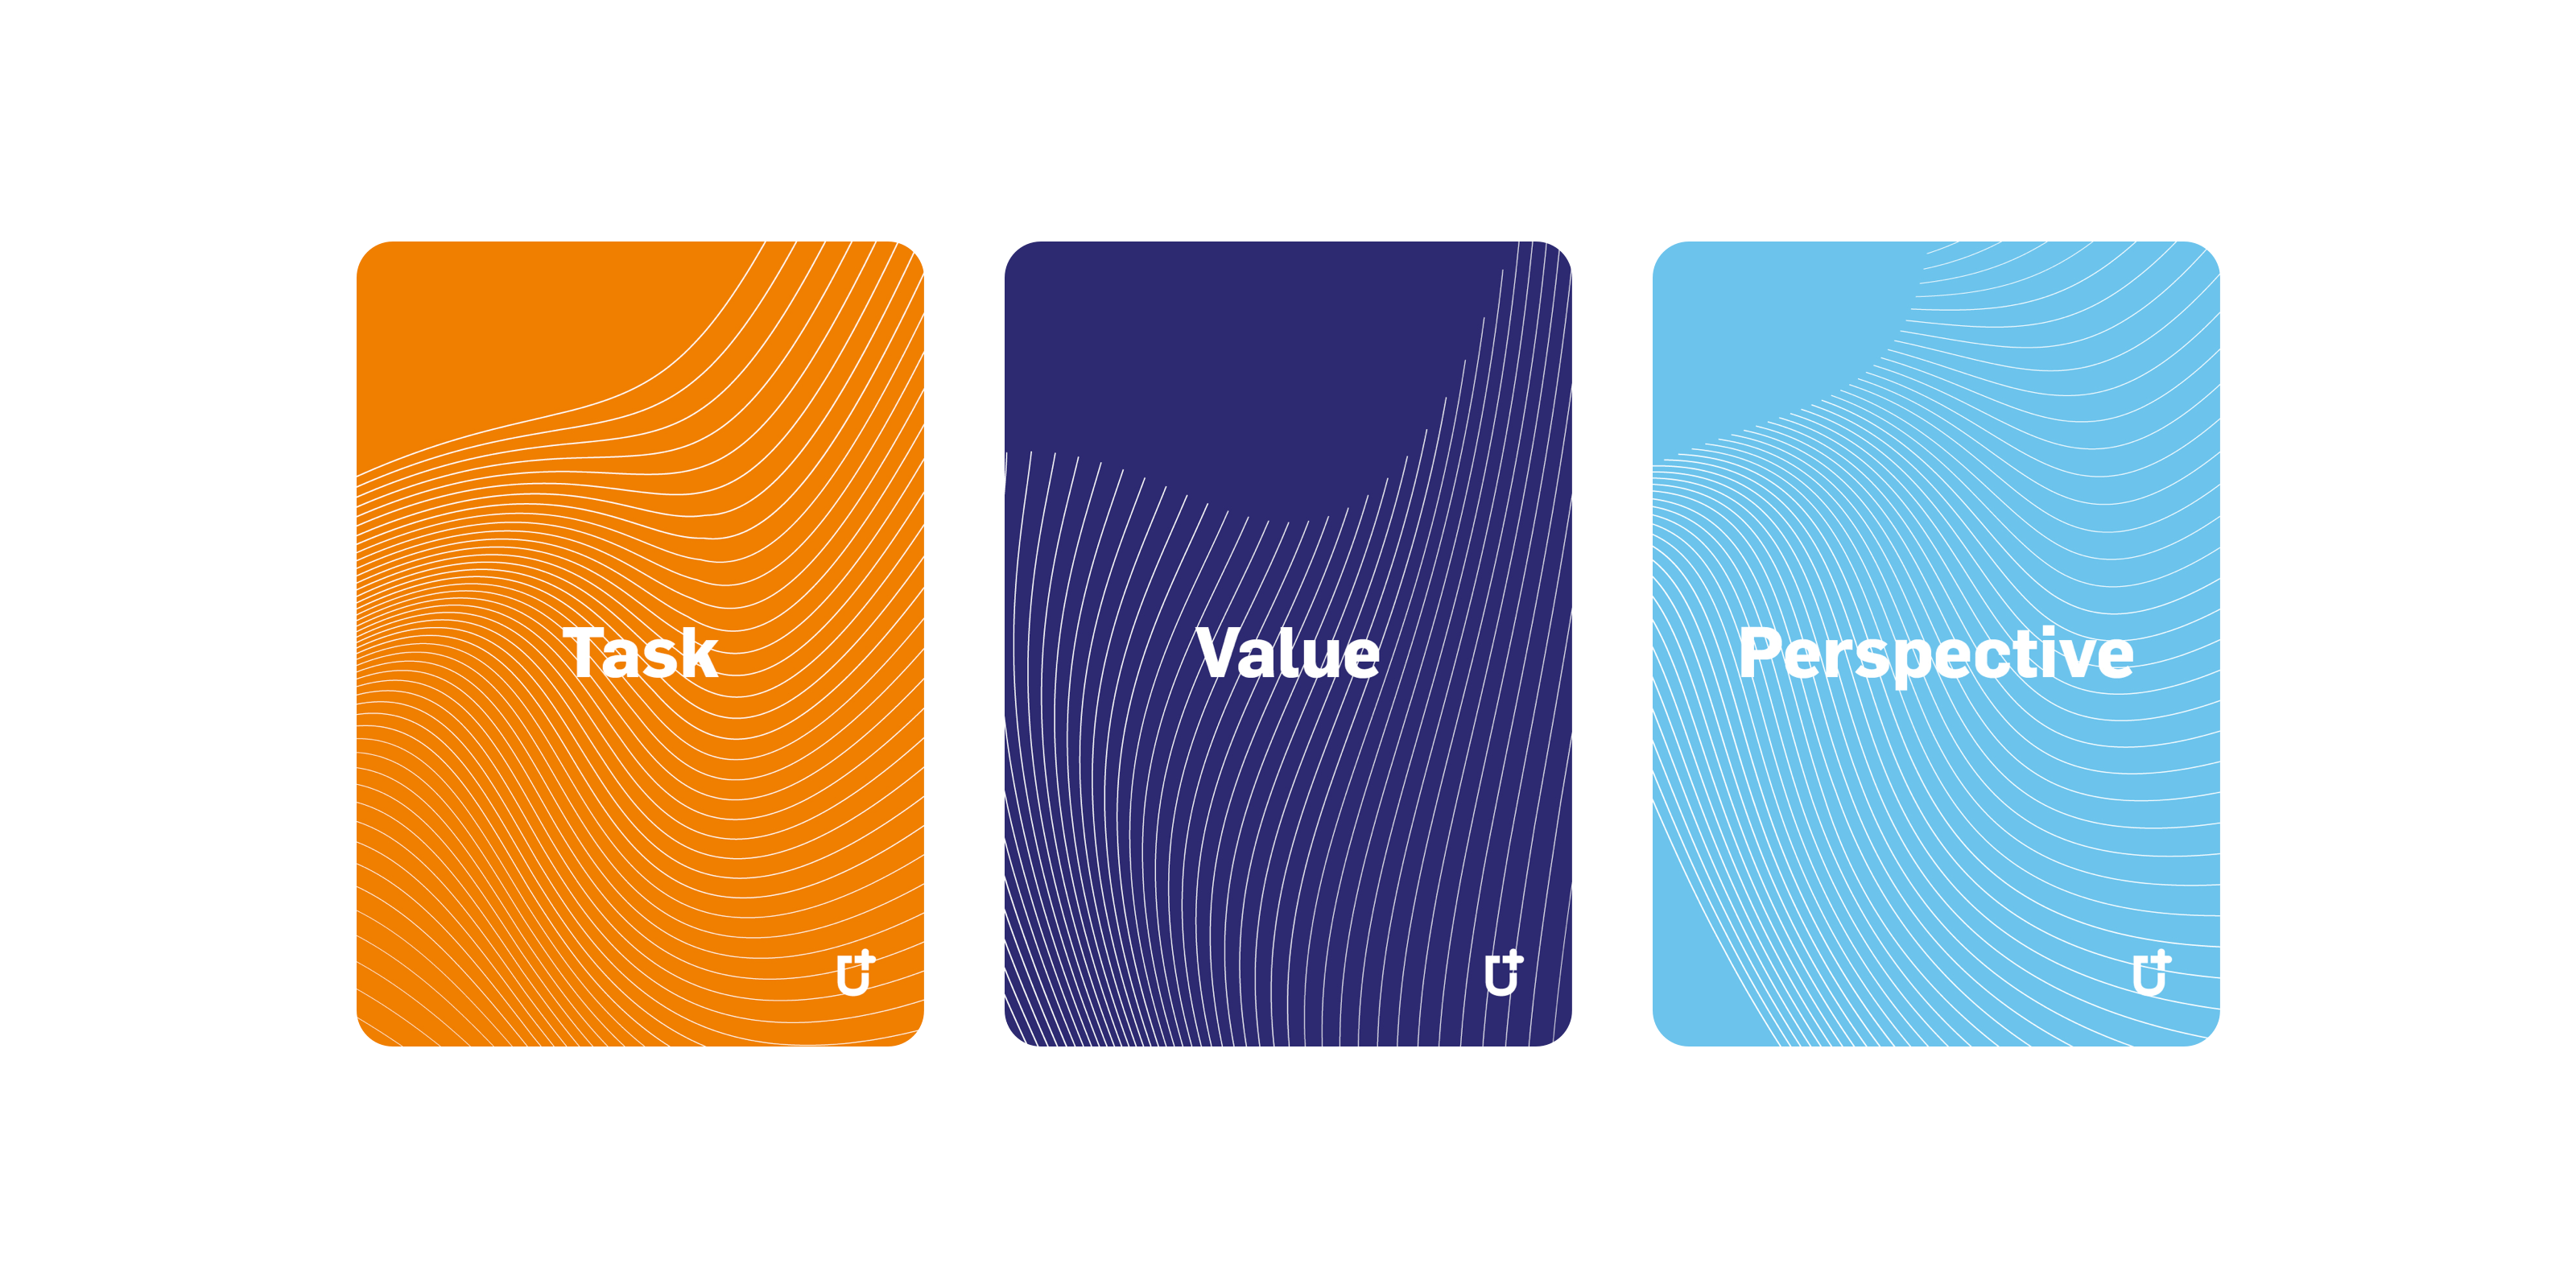 Types of cards in the AI Card Game: 'Task', 'Value' and 'Perspective'